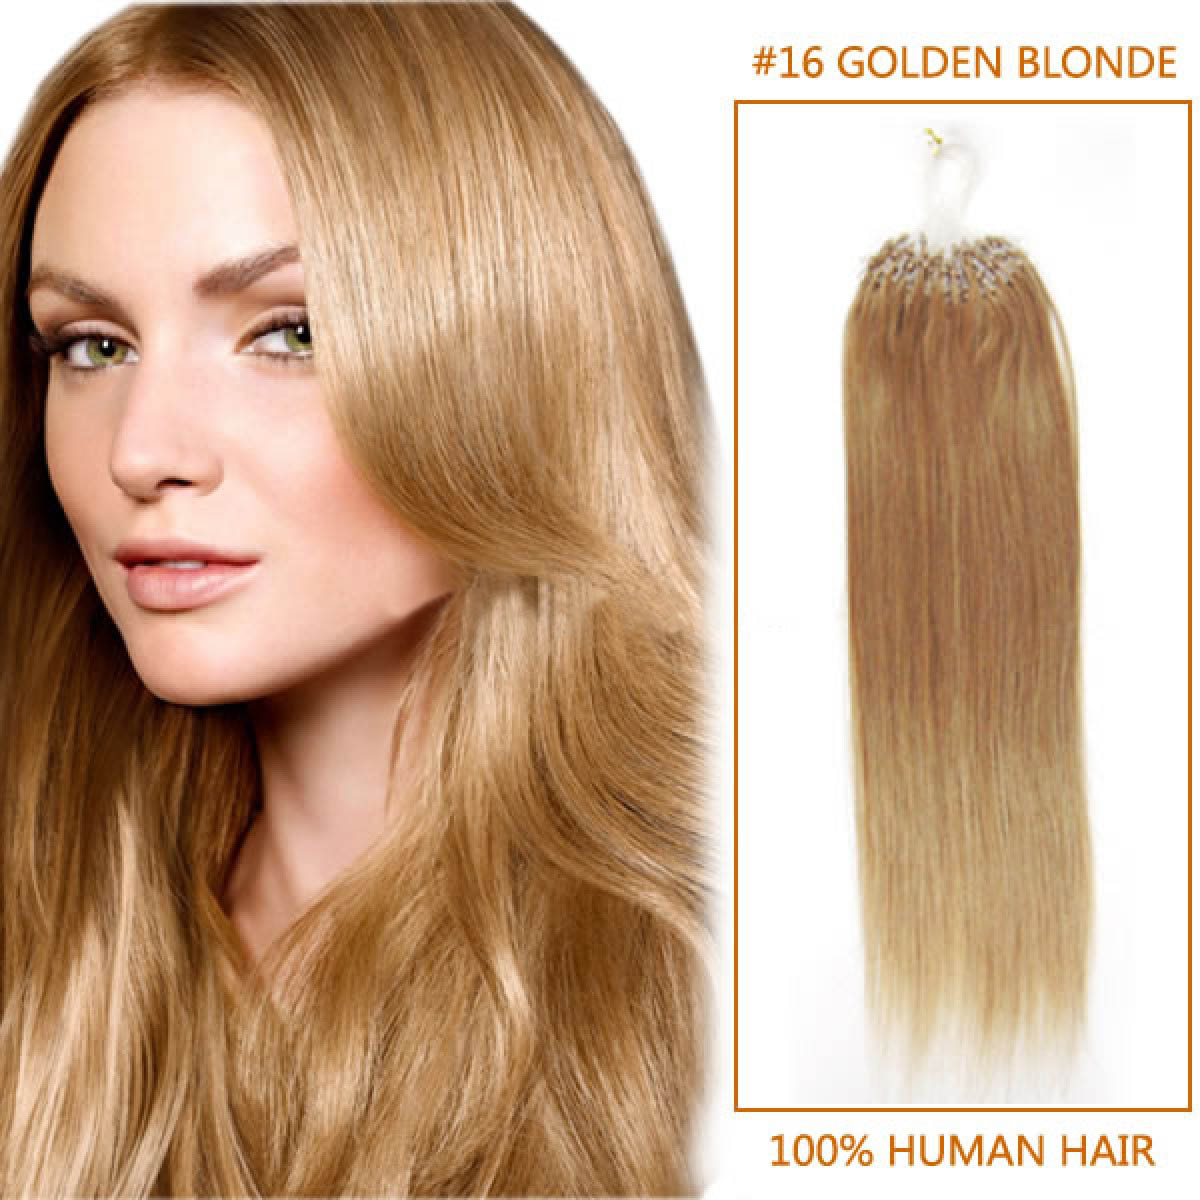 Inch 16 golden blonde micro loop human hair extensions 100s 20 inch 16 golden blonde micro loop human hair extensions 100s pmusecretfo Images